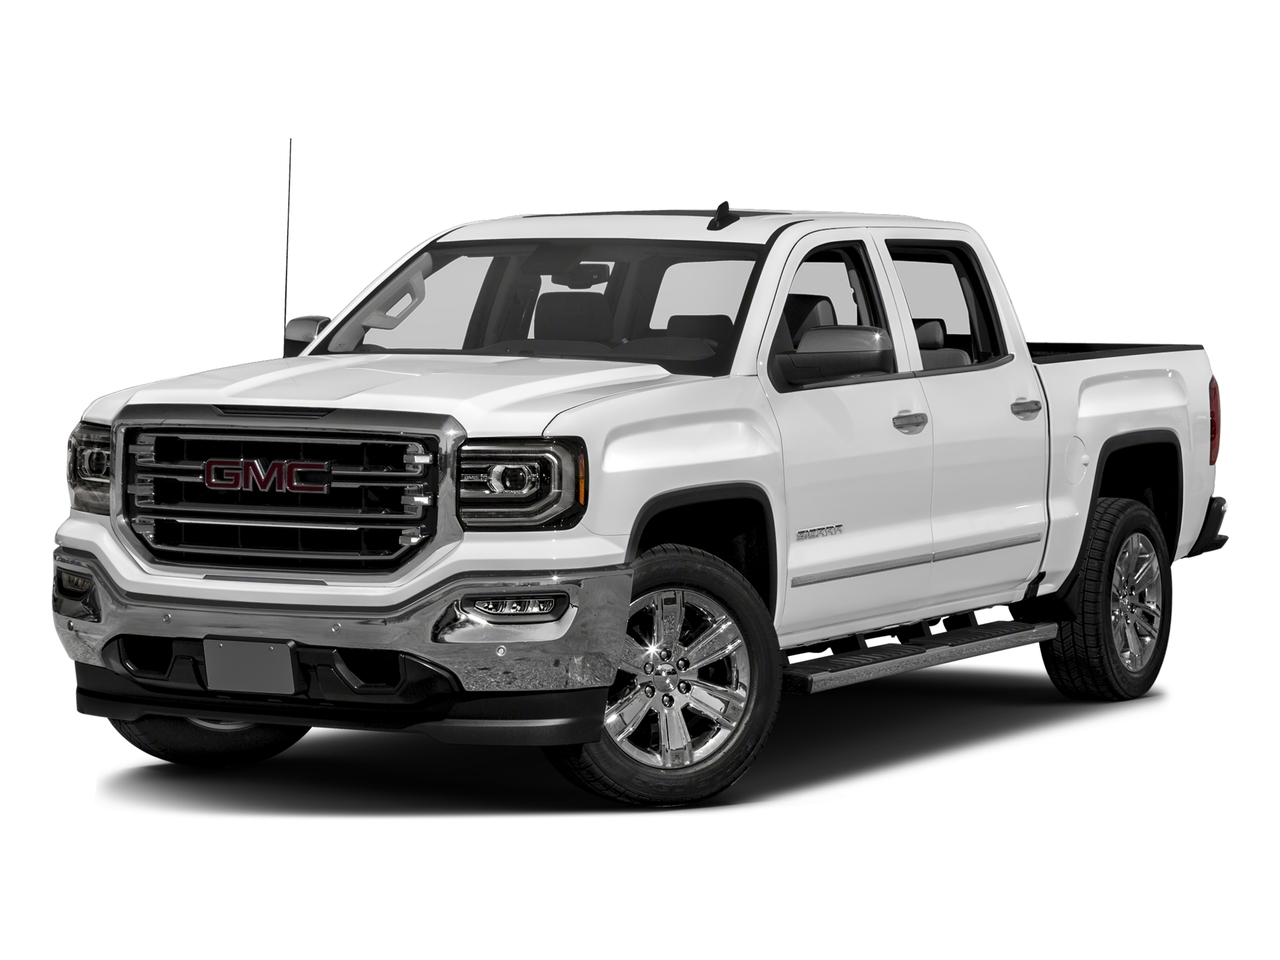 Summit White 2017 GMC Sierra 1500 SLT 4D Crew Cab Raleigh NC